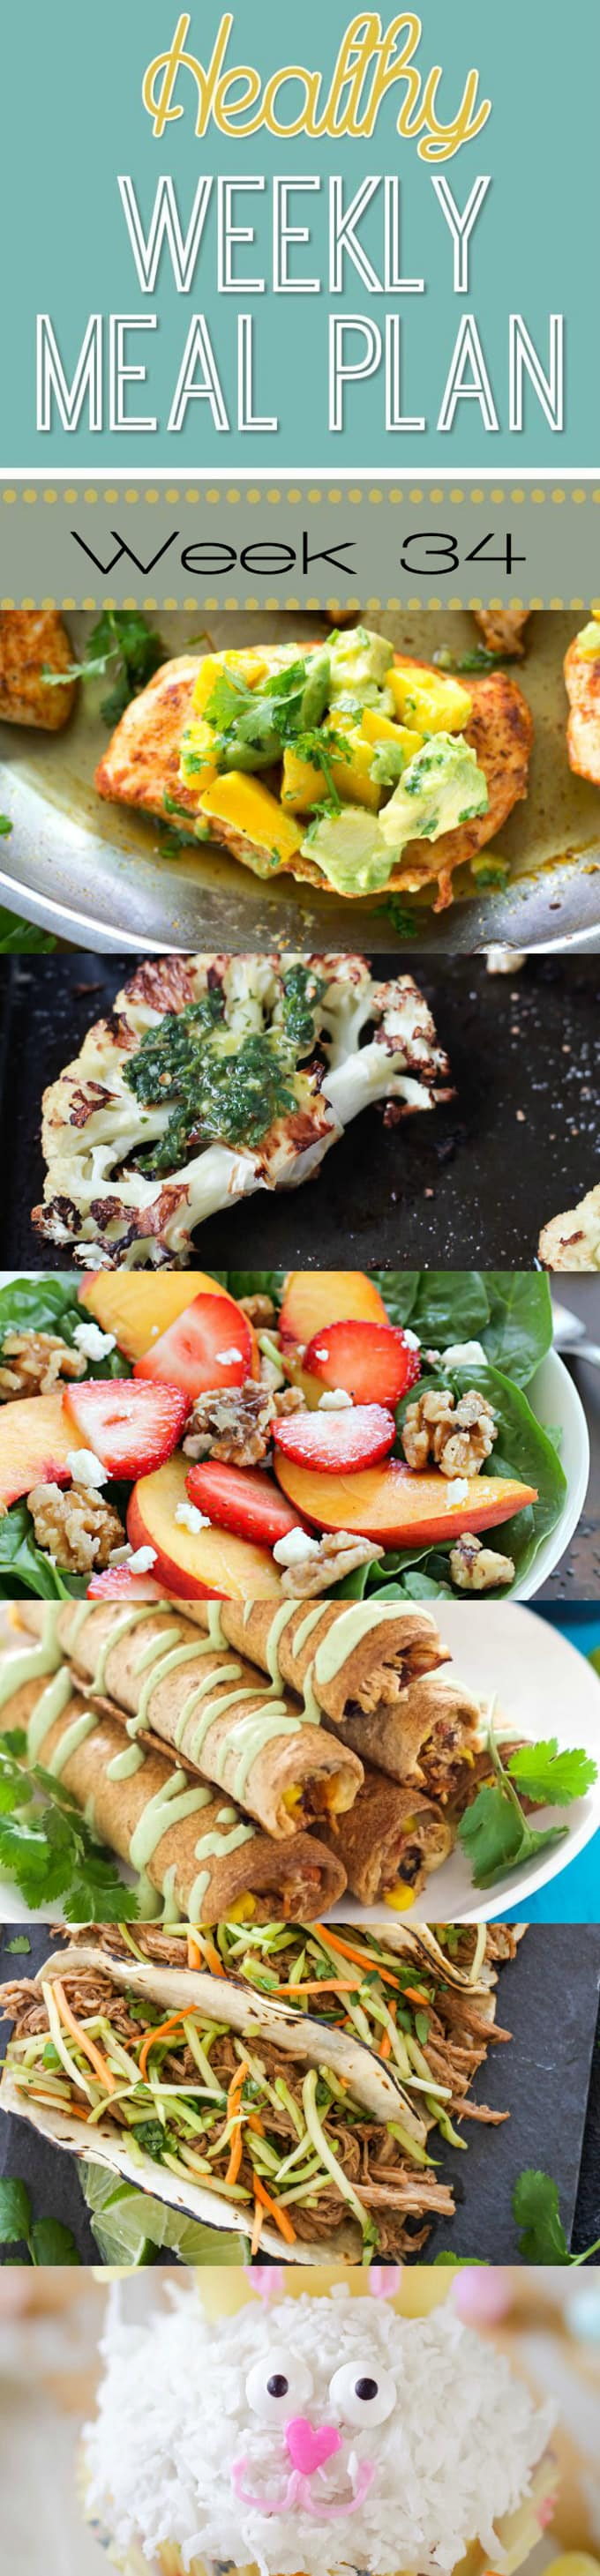 Healthy Weekly Meal Plan #34 is full of yummy, healthy recipes for you to make this week! We have breakfast, lunch, dinner, dessert and a snack all prepped out for you for the week!